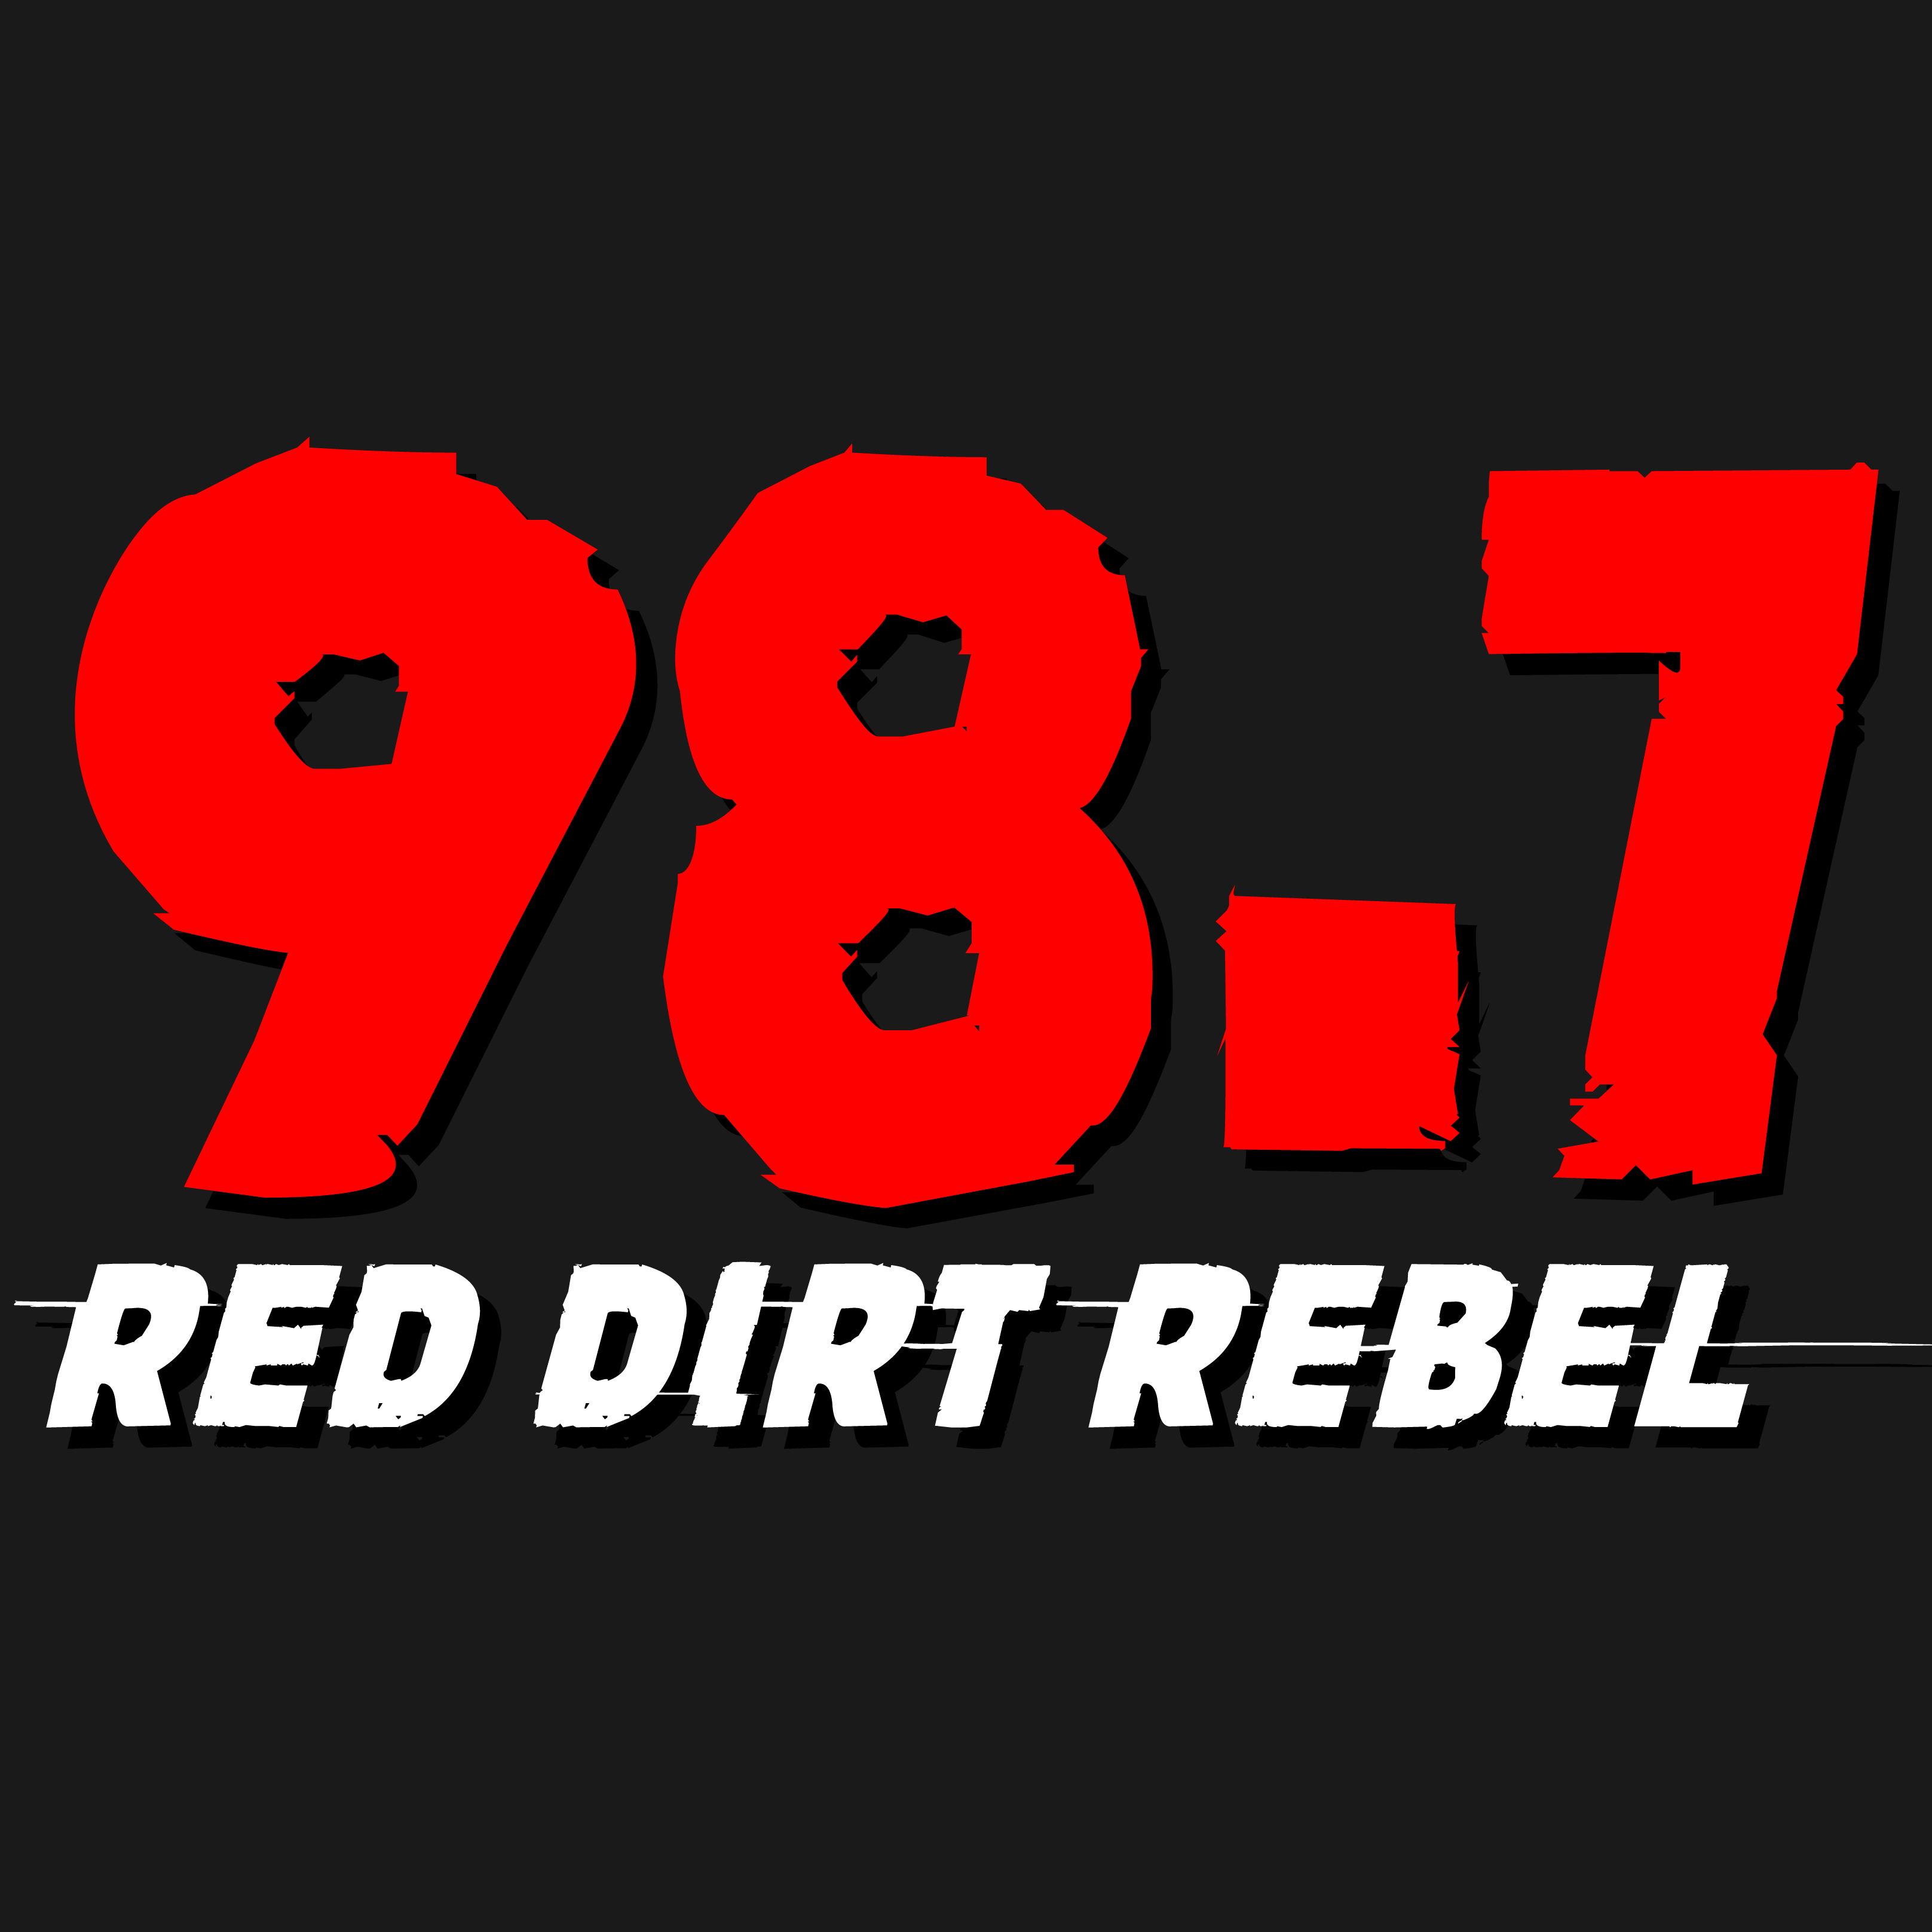 98.7 The Red Dirt Rebel